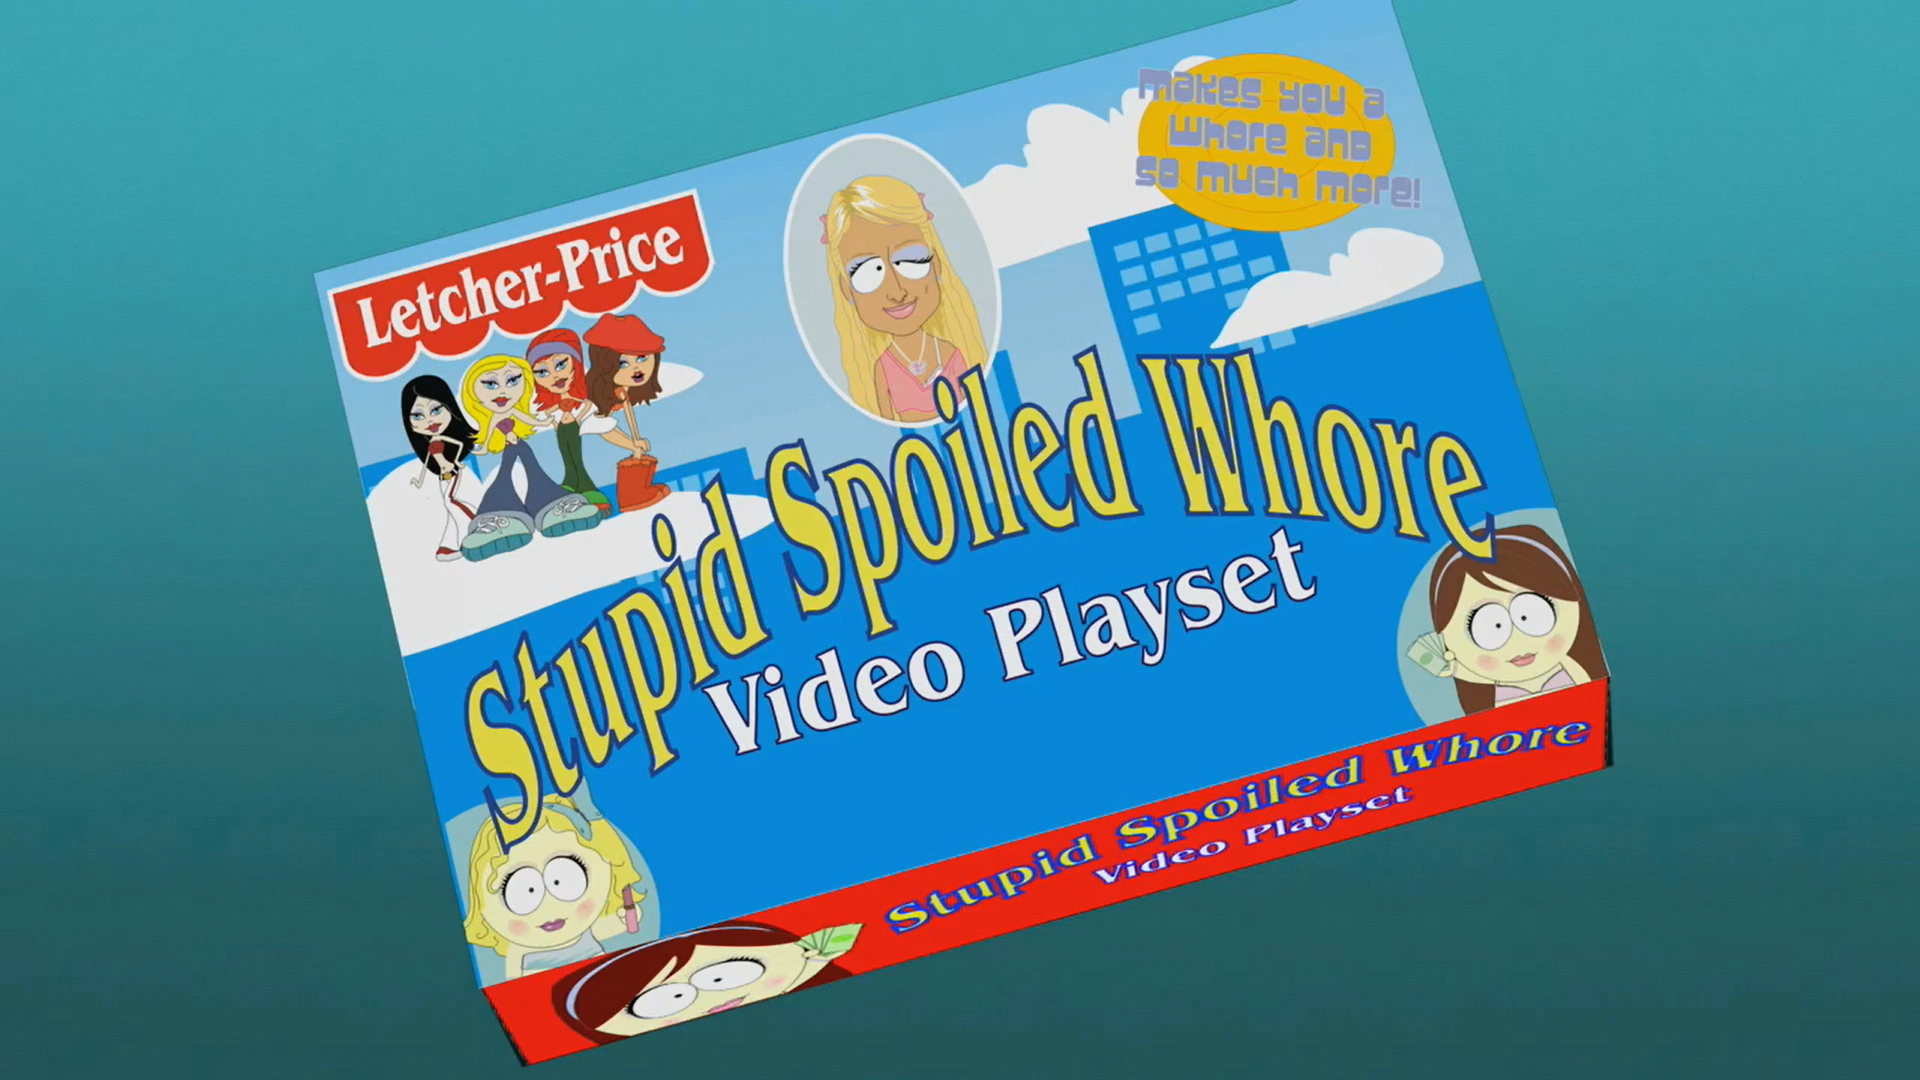 Stupid Spoiled Whore Video Playset (object)